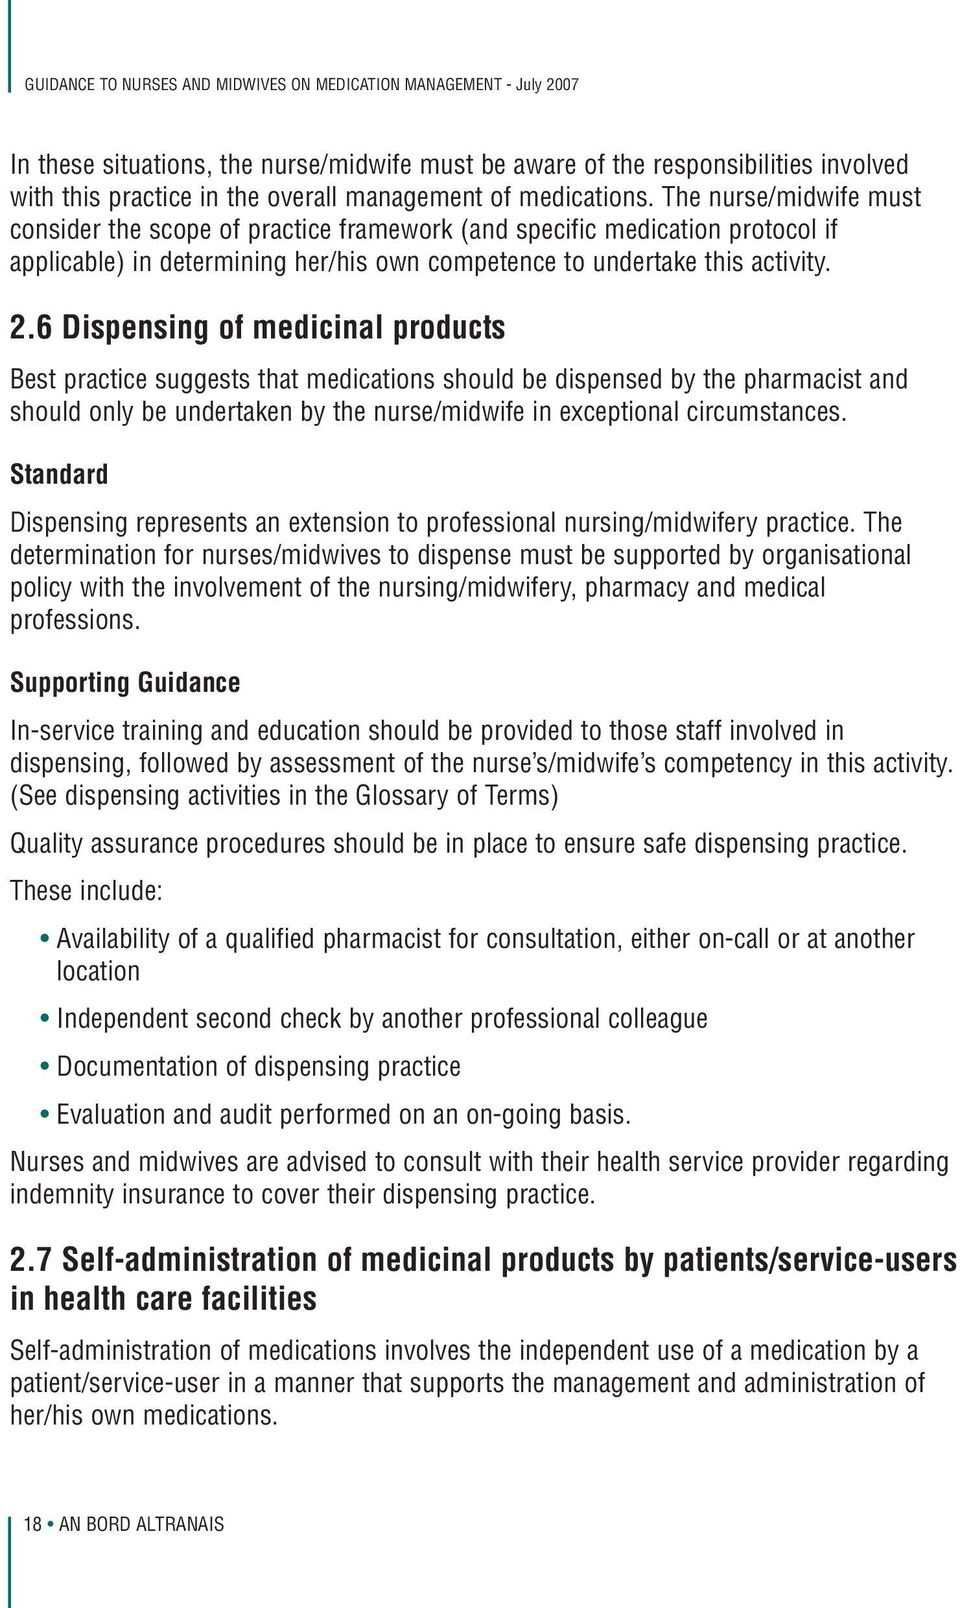 6 Dispensing of medicinal products Best practice suggests that medications should be dispensed by the pharmacist and should only be undertaken by the nurse/midwife in exceptional circumstances.